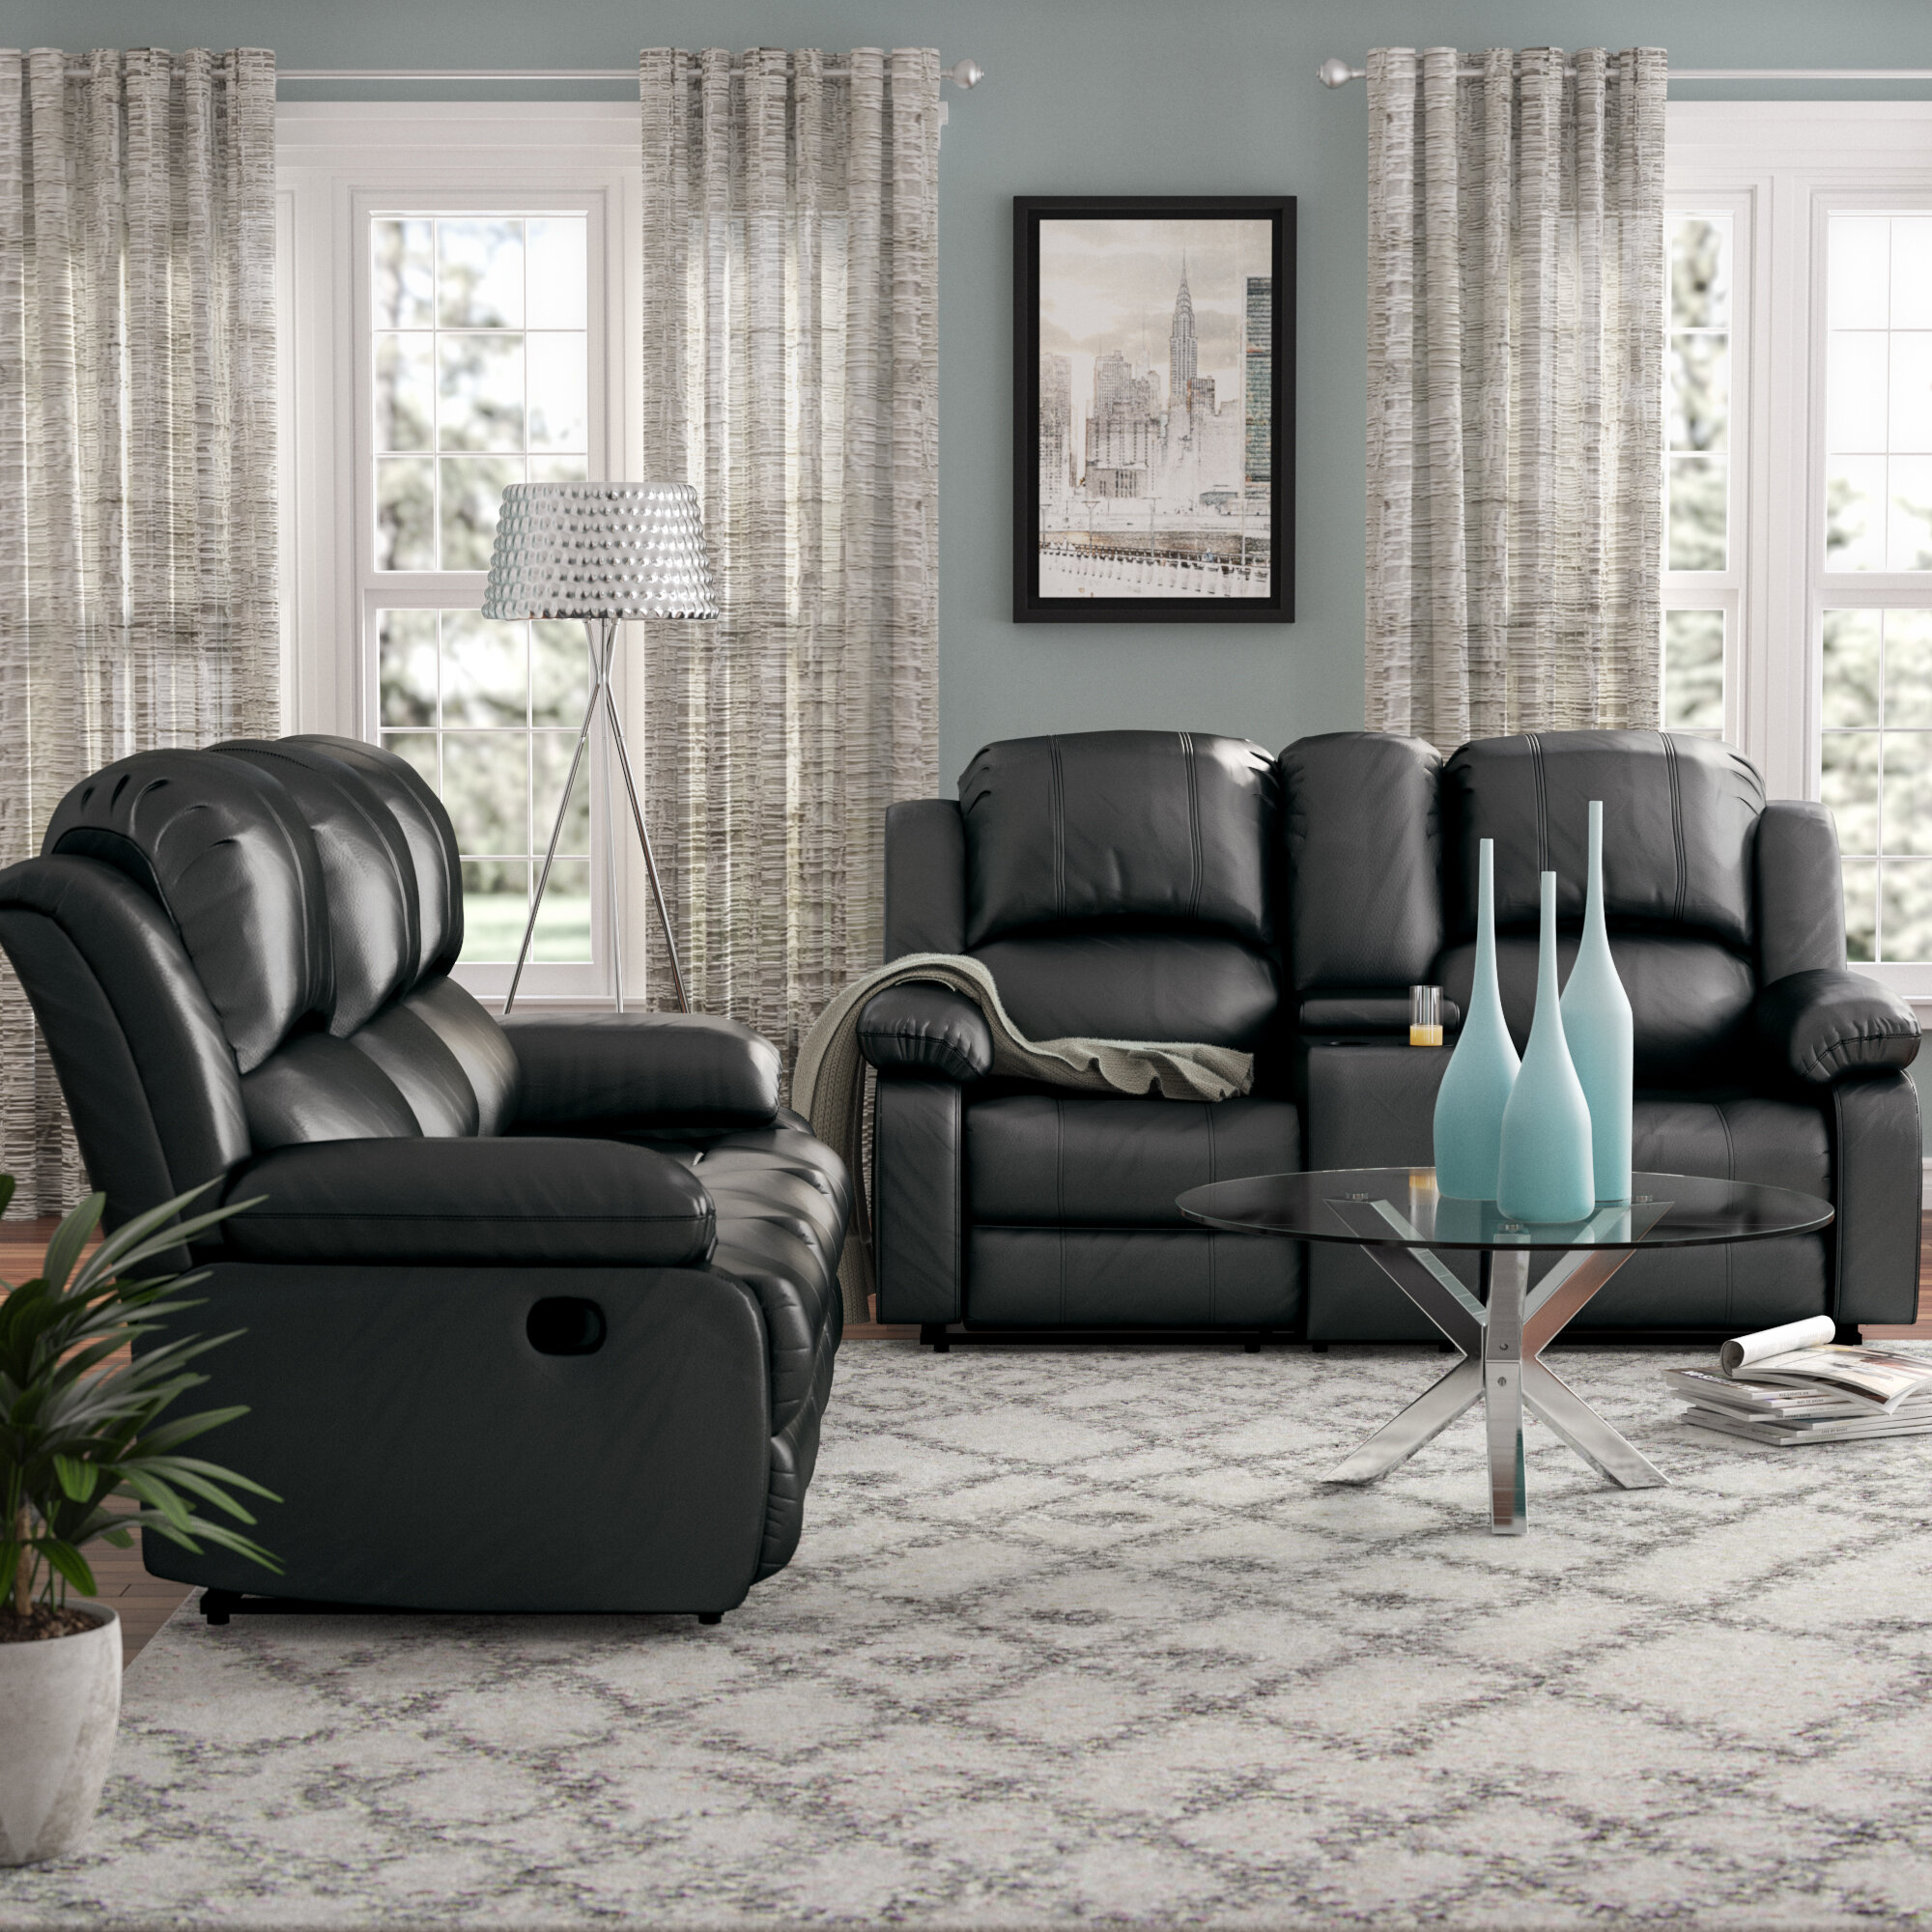 Red barrel studio mayday reclining 2 piece faux leather living room set reviews wayfair